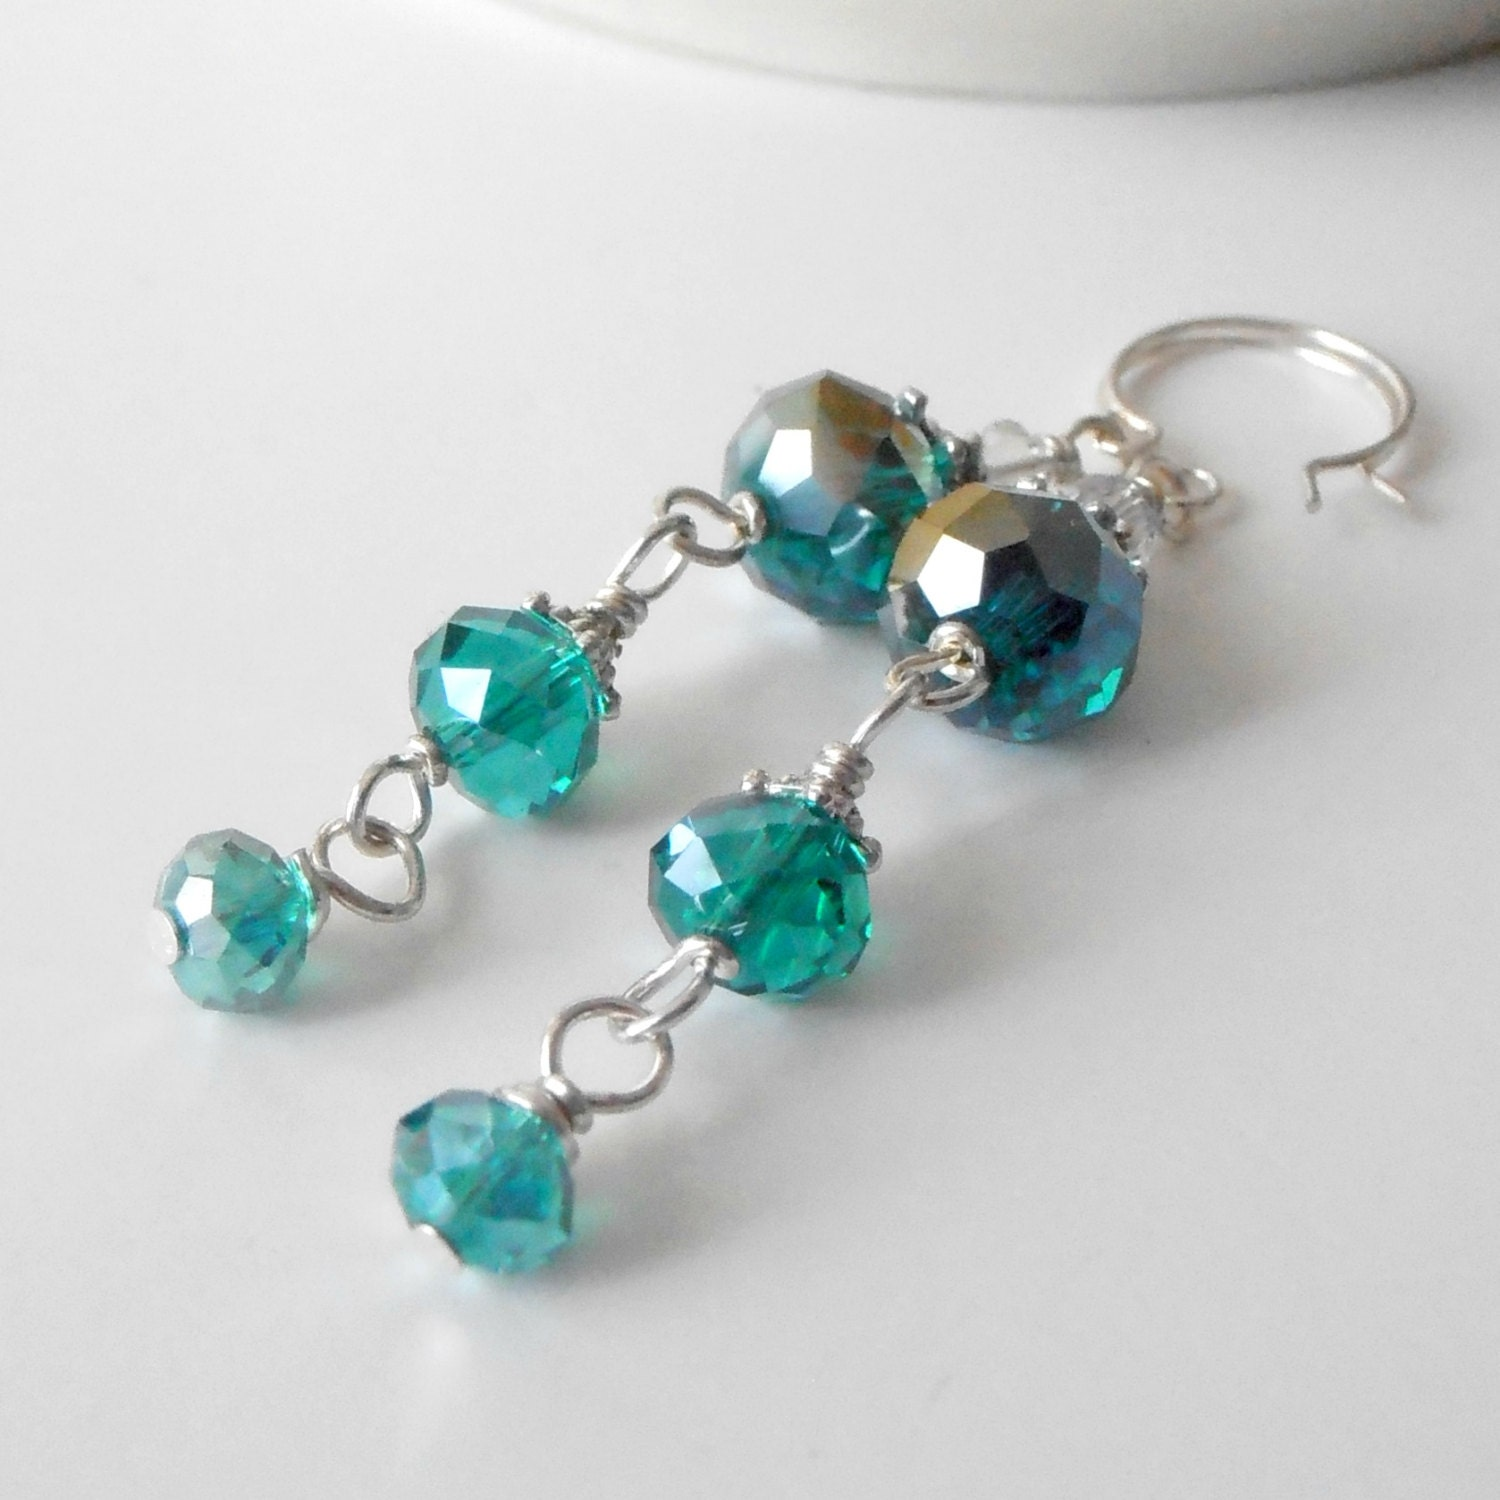 ON SALE Beaded Jewelry Teal Crystal Earrings Long Dangles Faceted Bead Drops in Silver Handmade Jewe